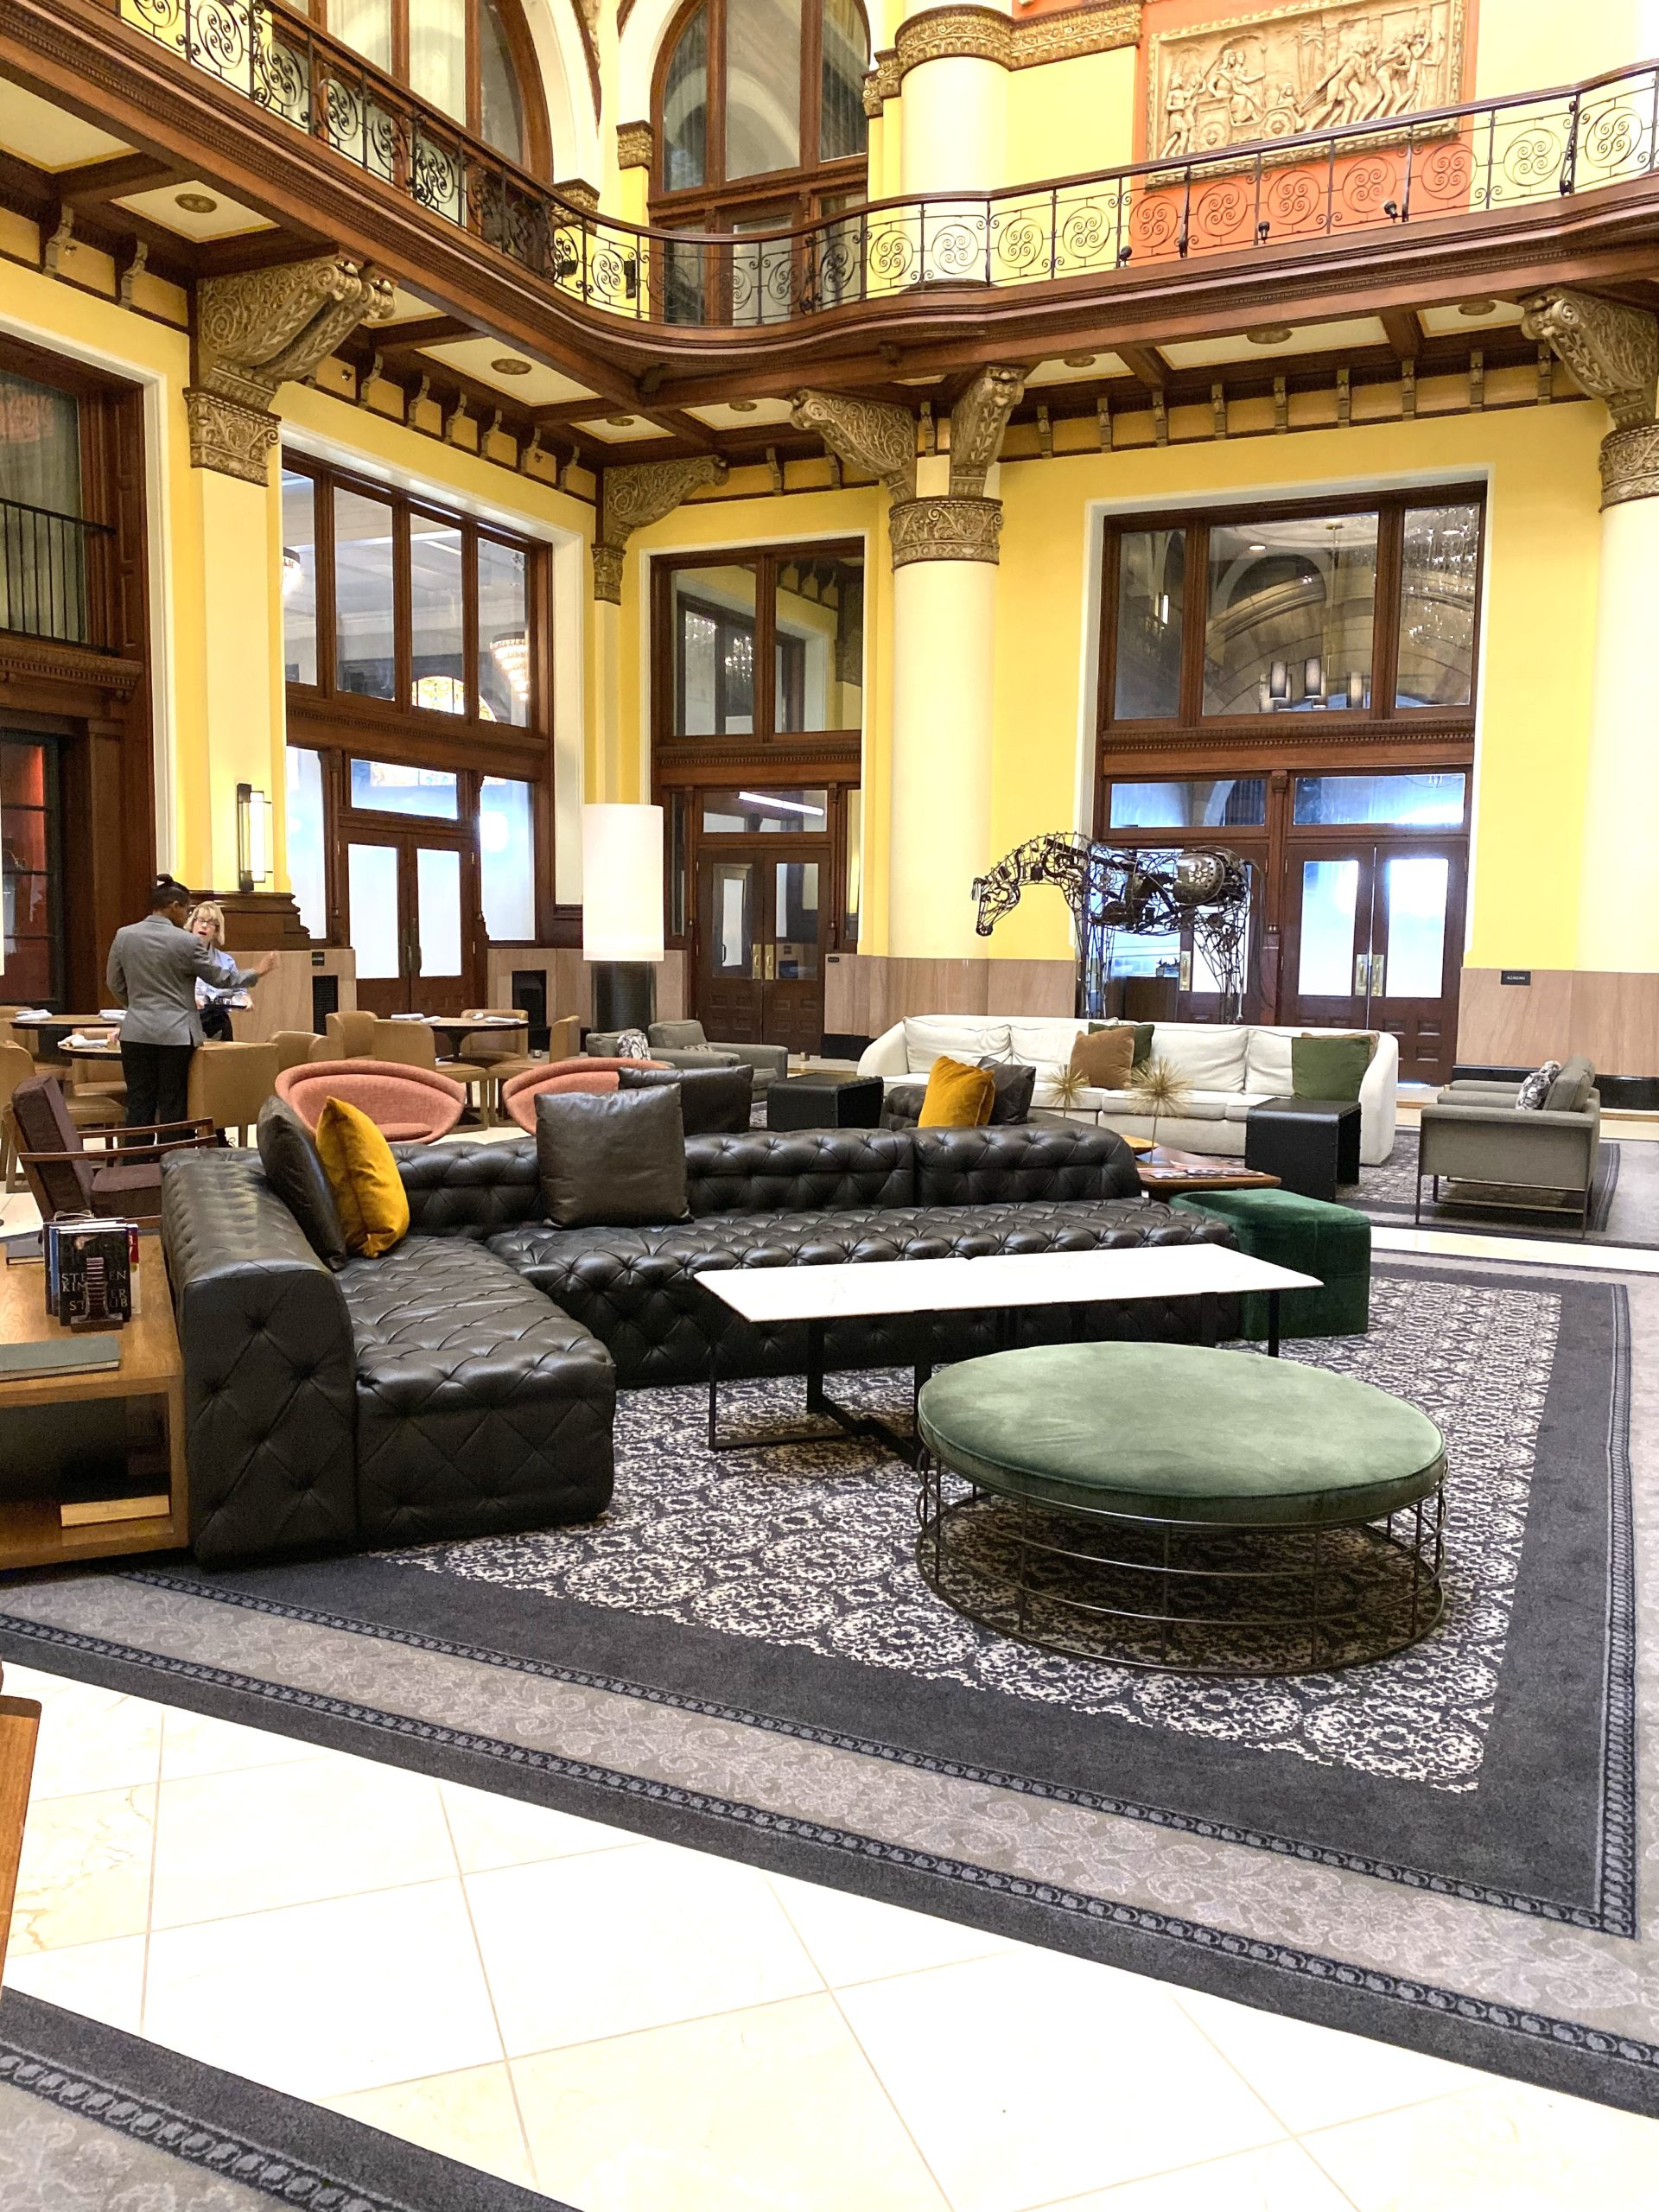 The modern & luxurious furniture is such an inviting twist on the old-school charm of the lobby.